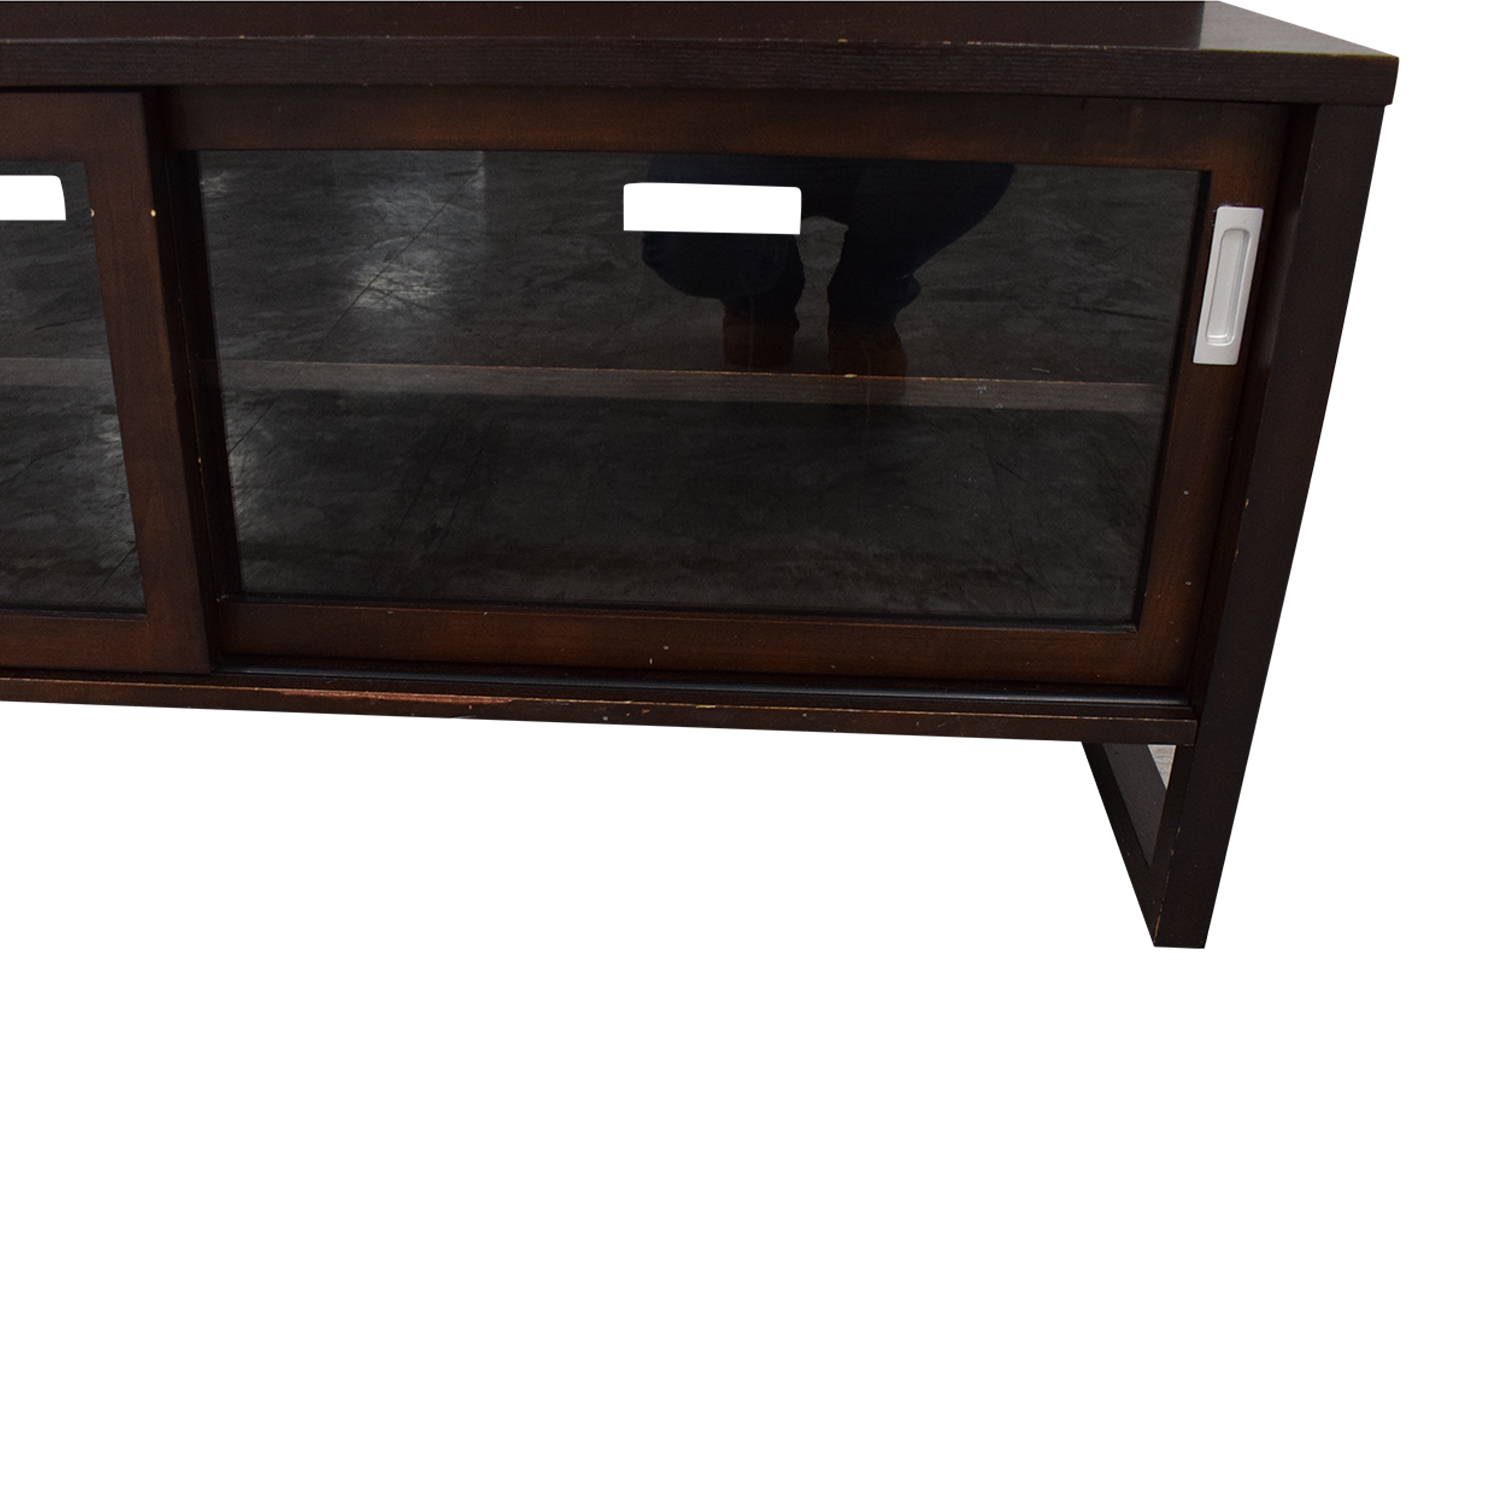 Crate & Barrel Crate & Barrel Entertainment Console with Back Panel Media Units